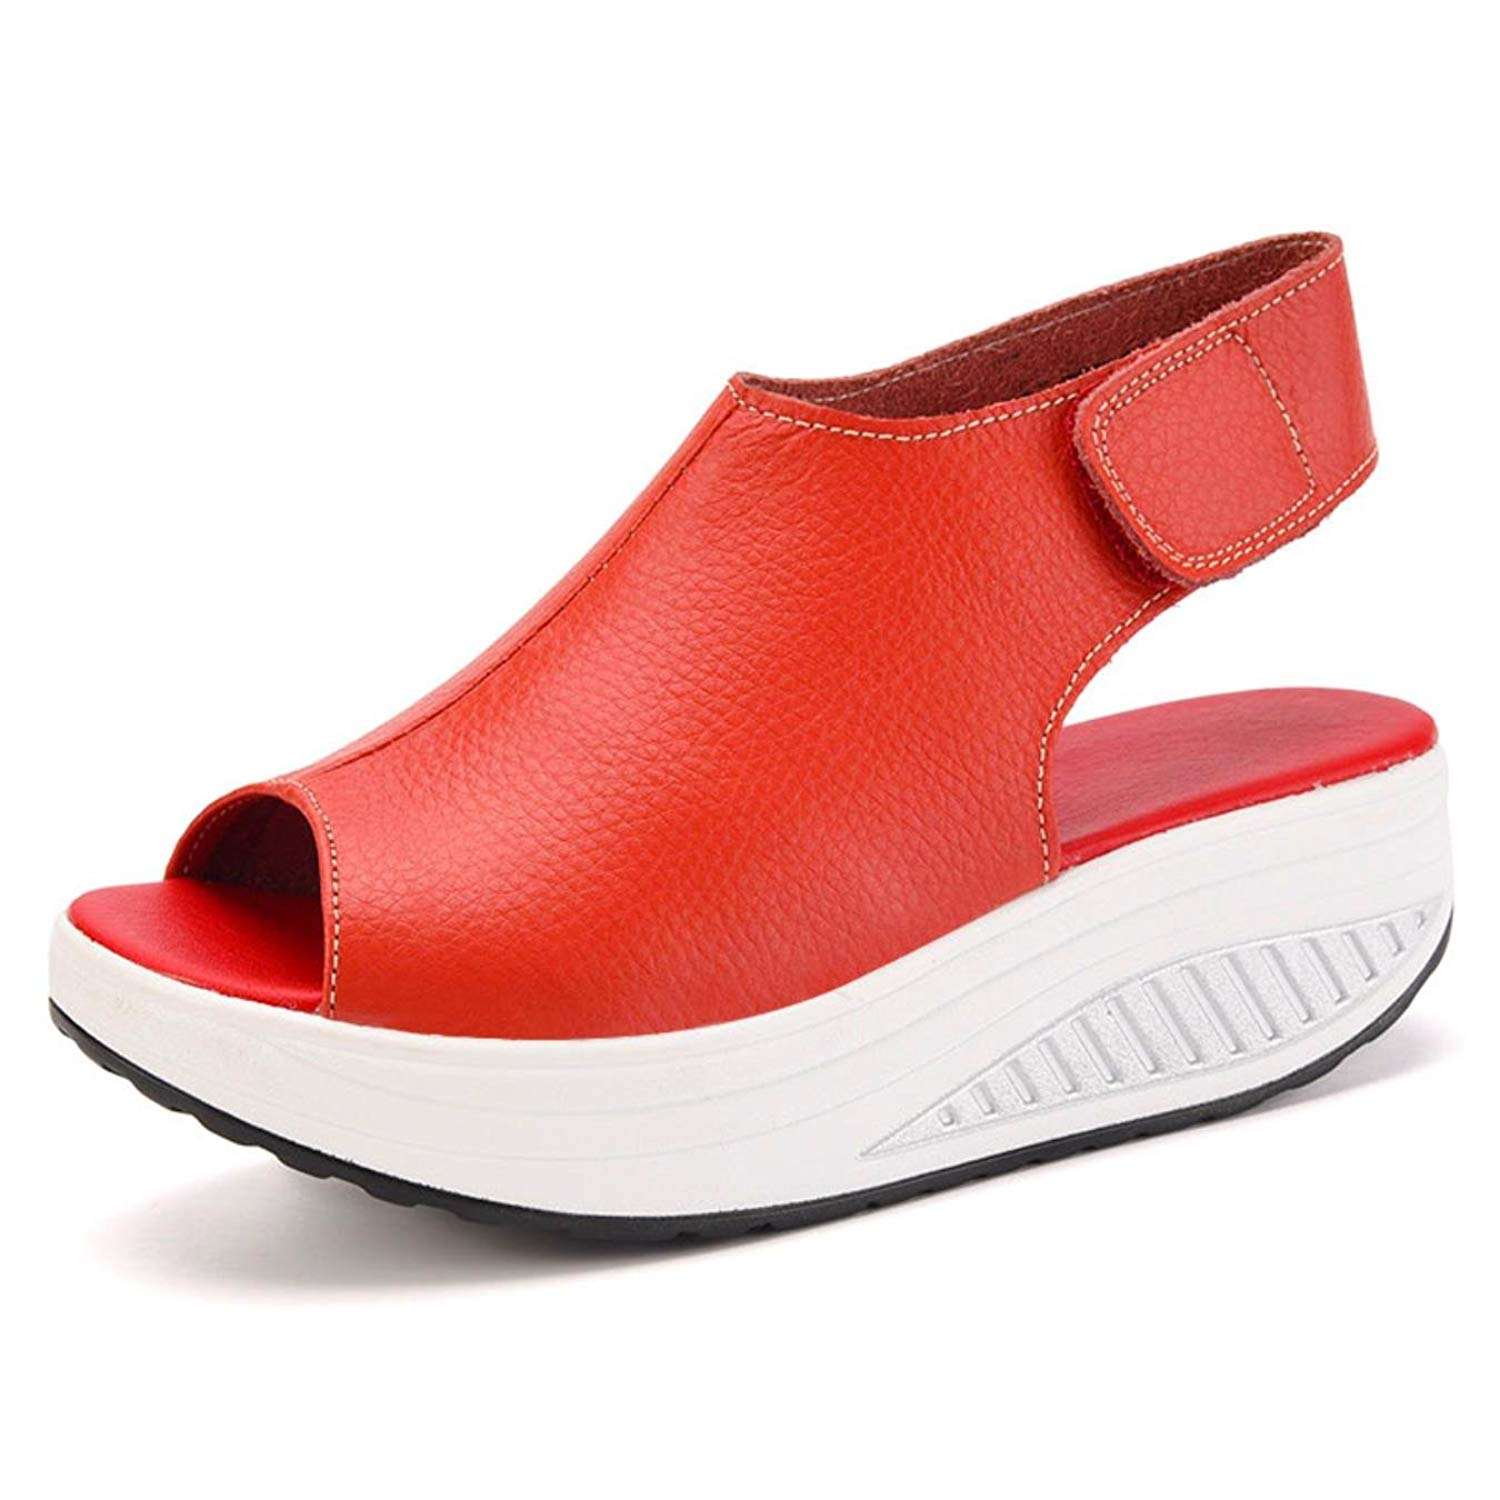 Women Casual Creepers Fashion Peep Toe Platform Shoes Women Flats Summer Breathable Creepers Heels Female Casual Shoes